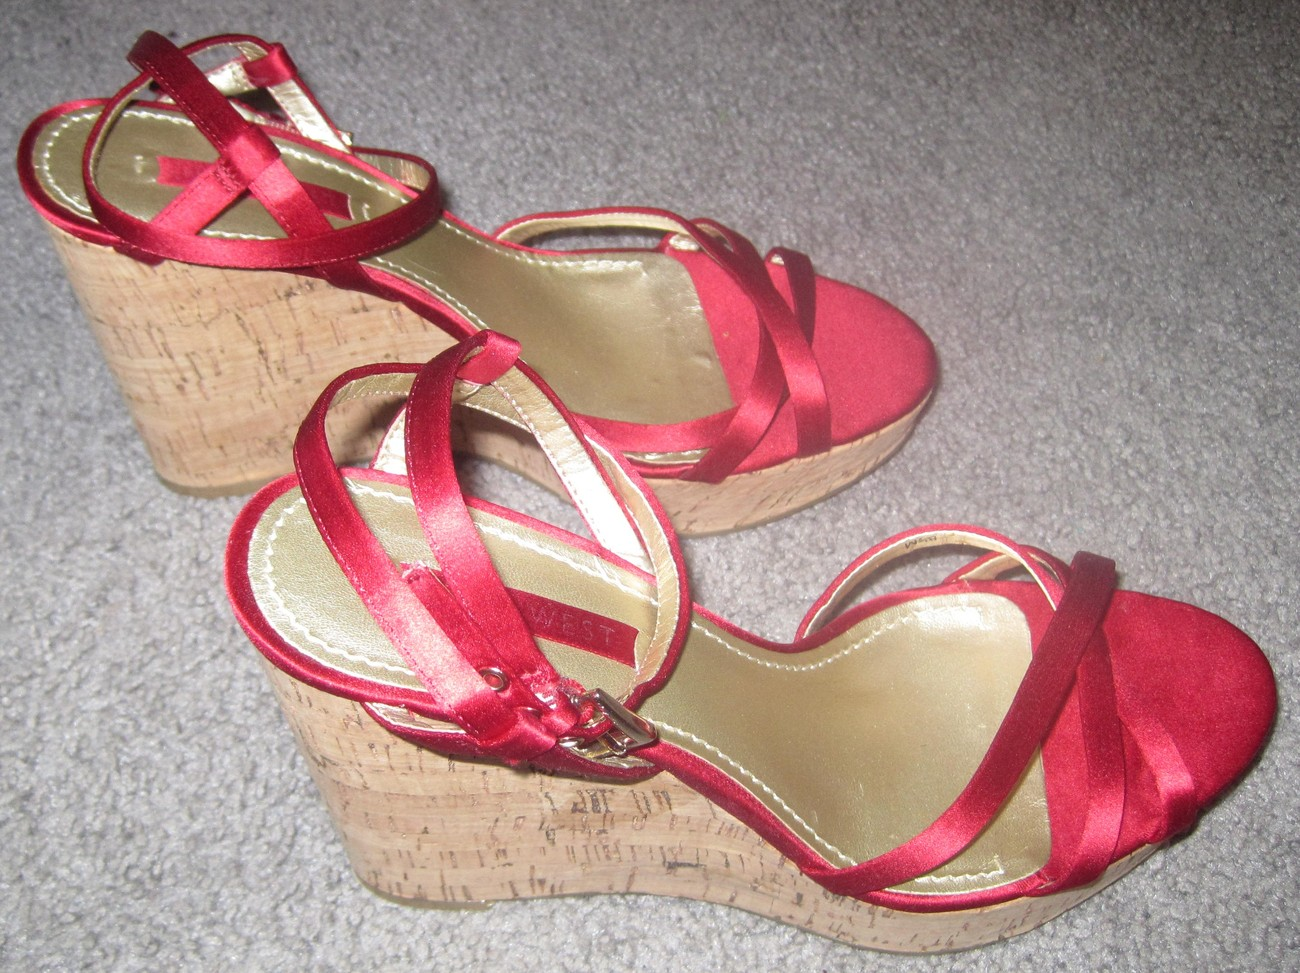 Nine West Red Strappy Wedges Women's Size 8.5 Cork Heel 4.5""